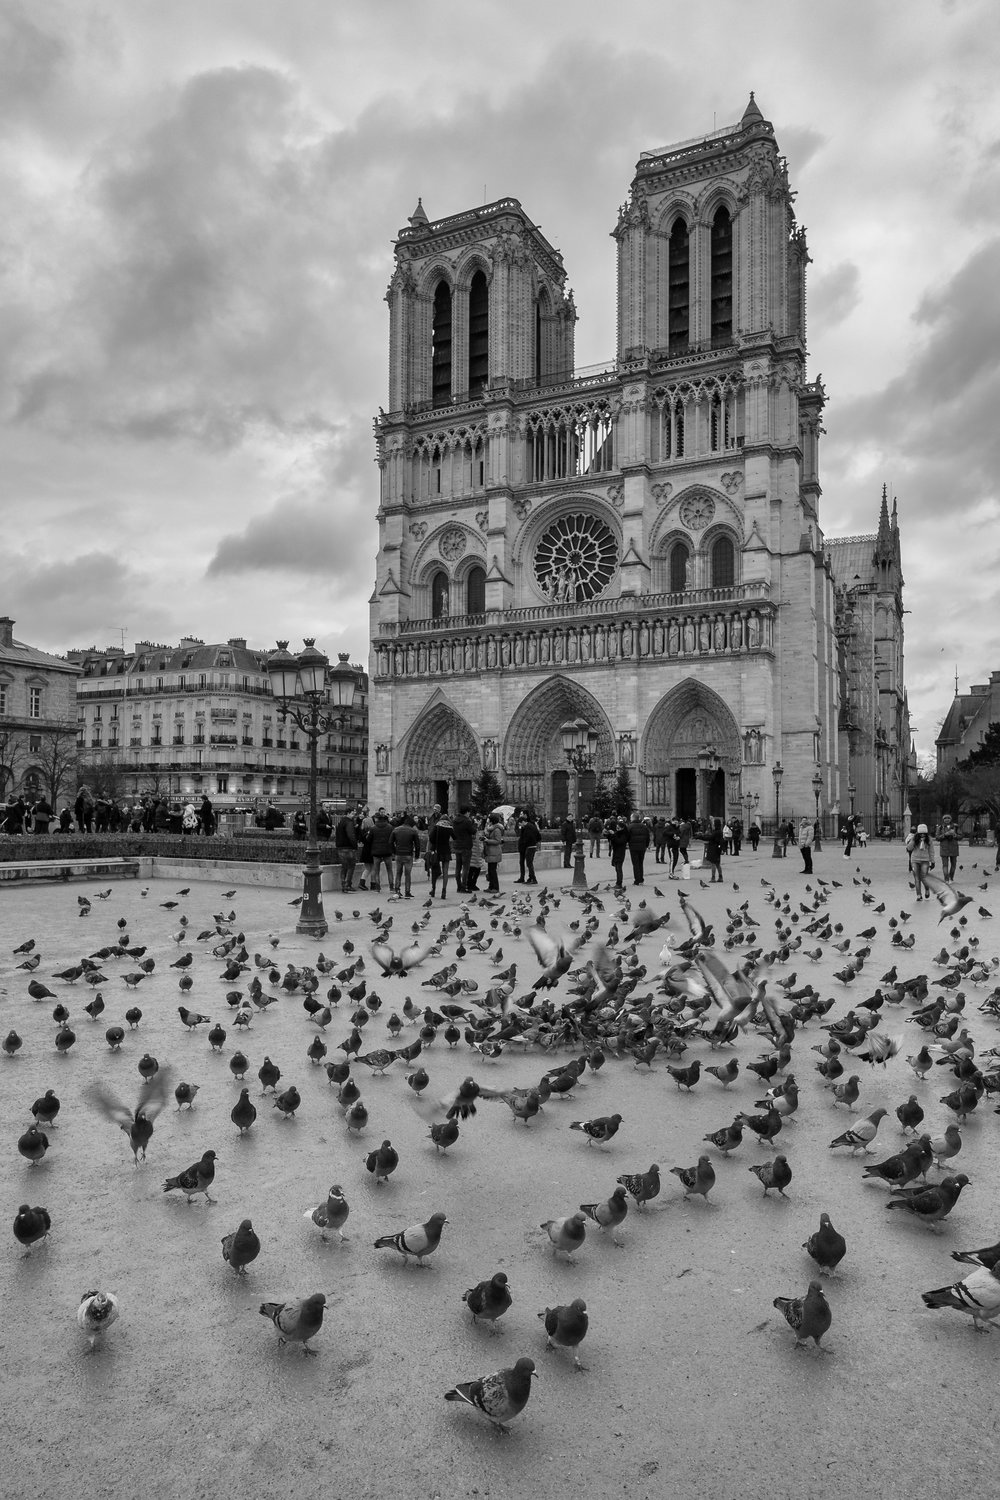 Notre Dame, Paris. January, 2017